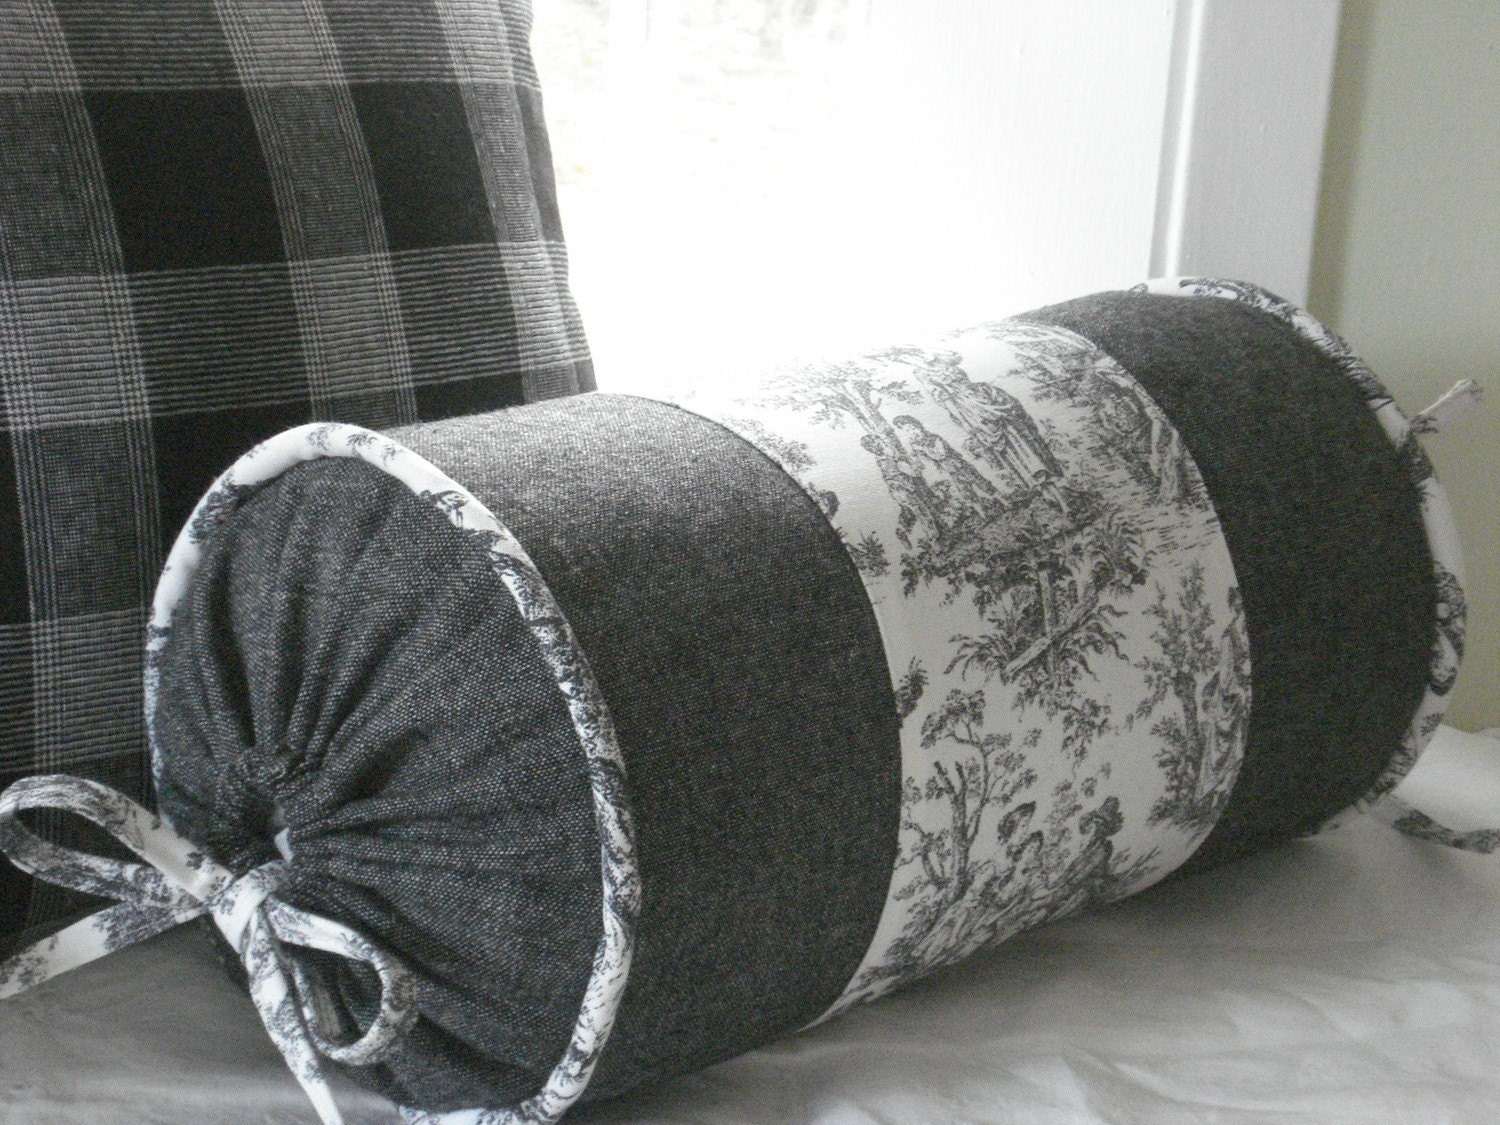 newdecorative designer bolster pillow by With designer bolster pillows